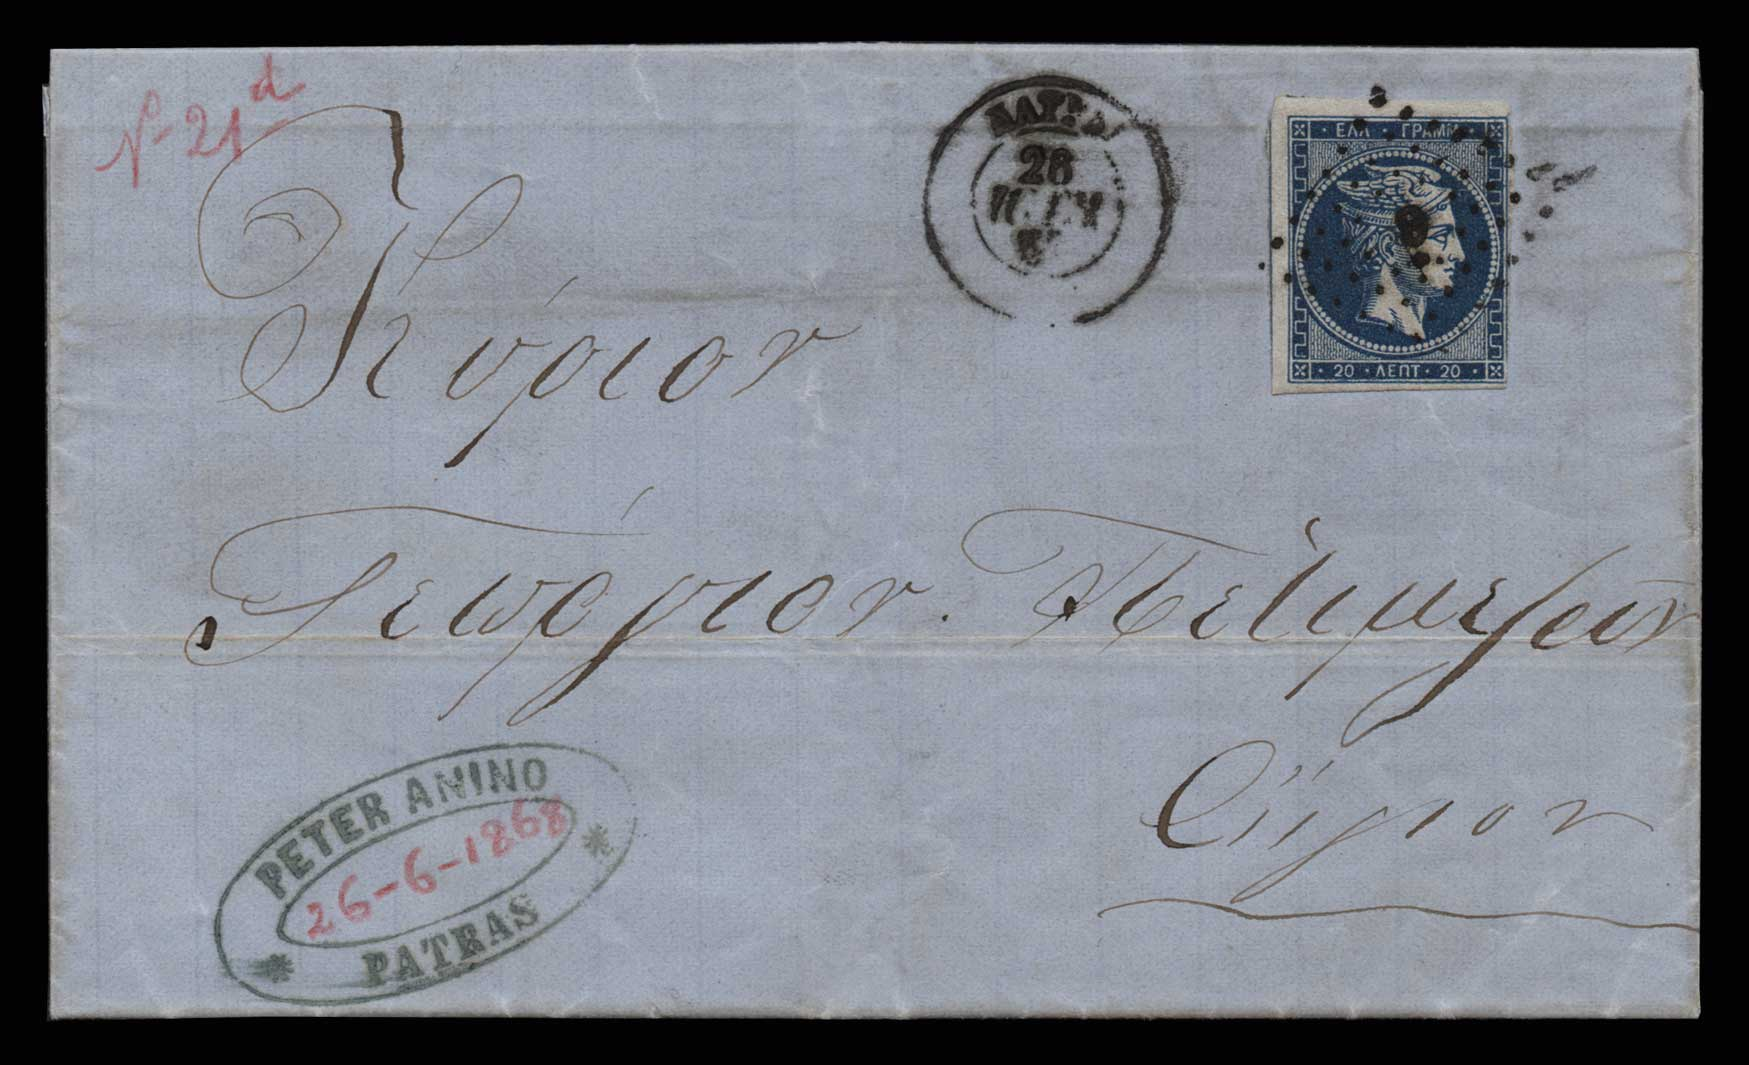 Lot 152 - -  LARGE HERMES HEAD 1862/67 consecutive athens printings -  Athens Auctions Public Auction 70 General Stamp Sale